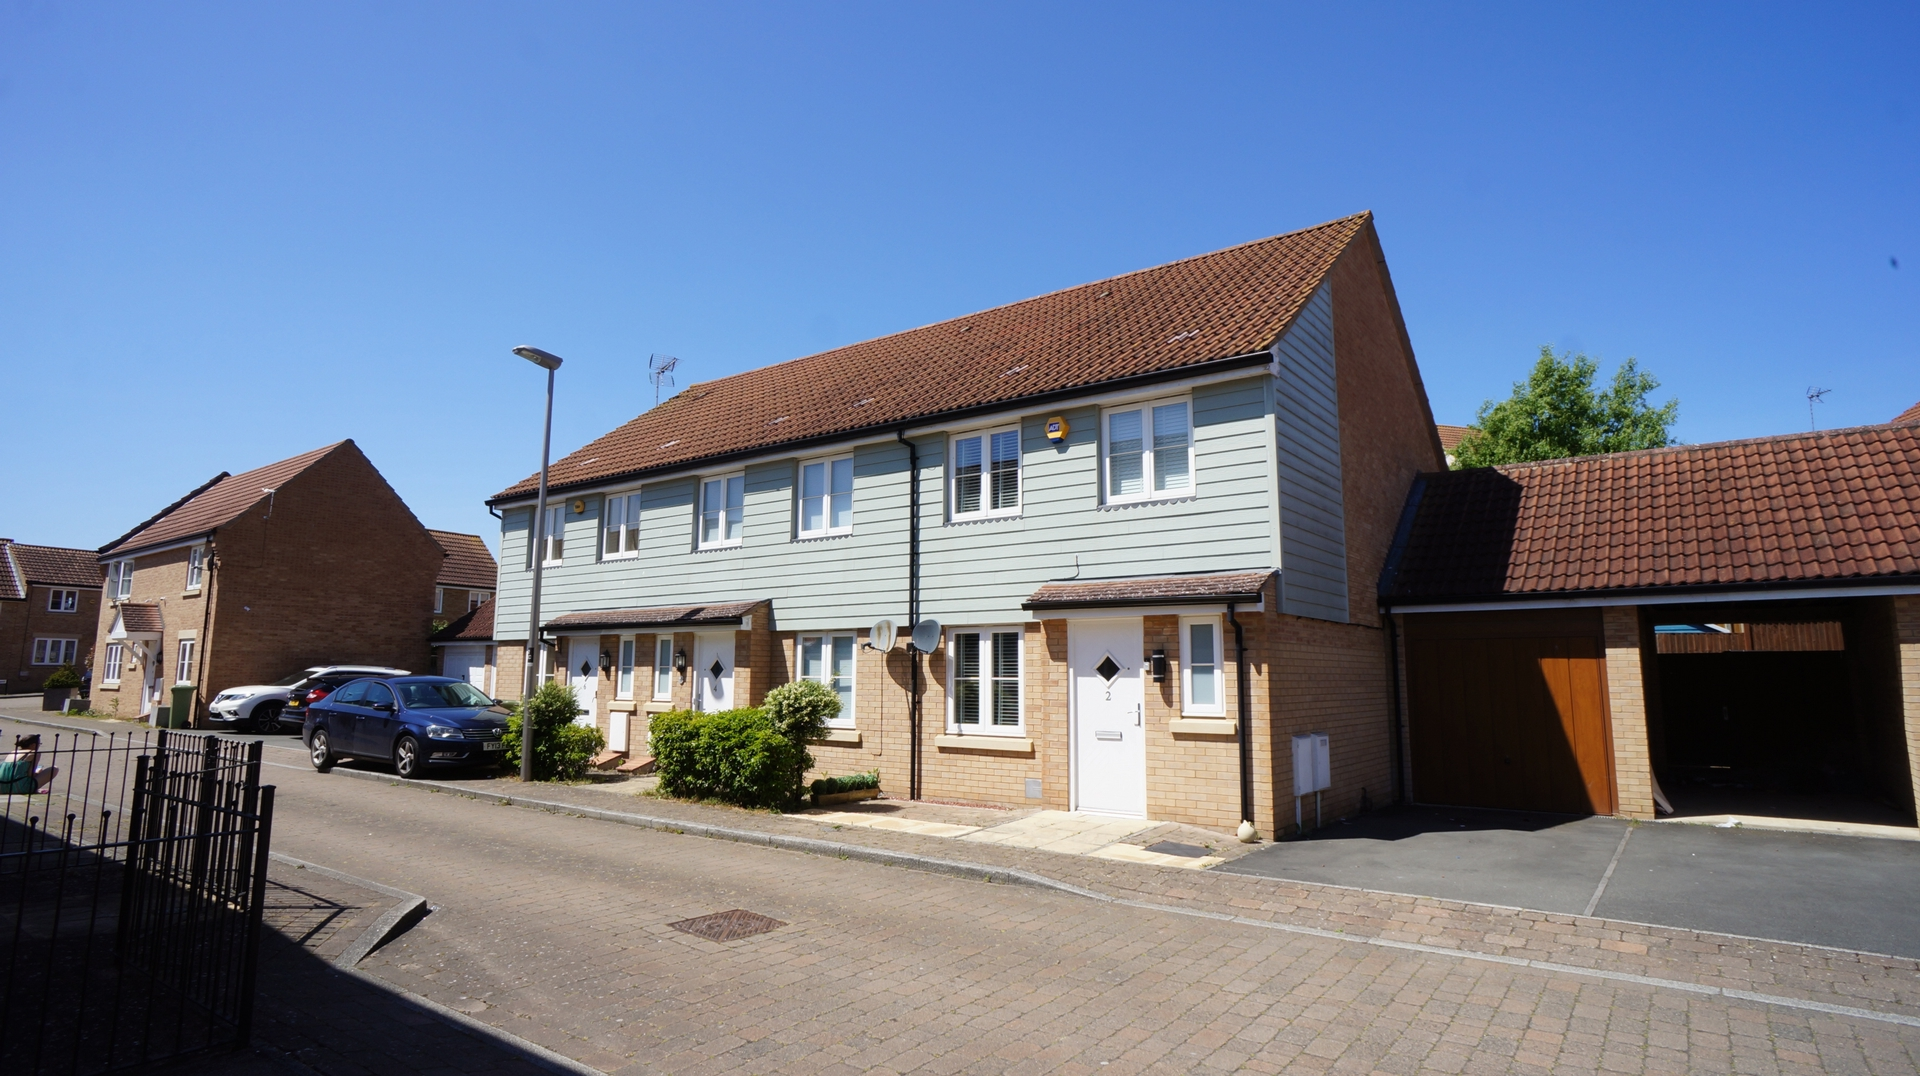 Cagney Crescent, Oxley Park, MK4